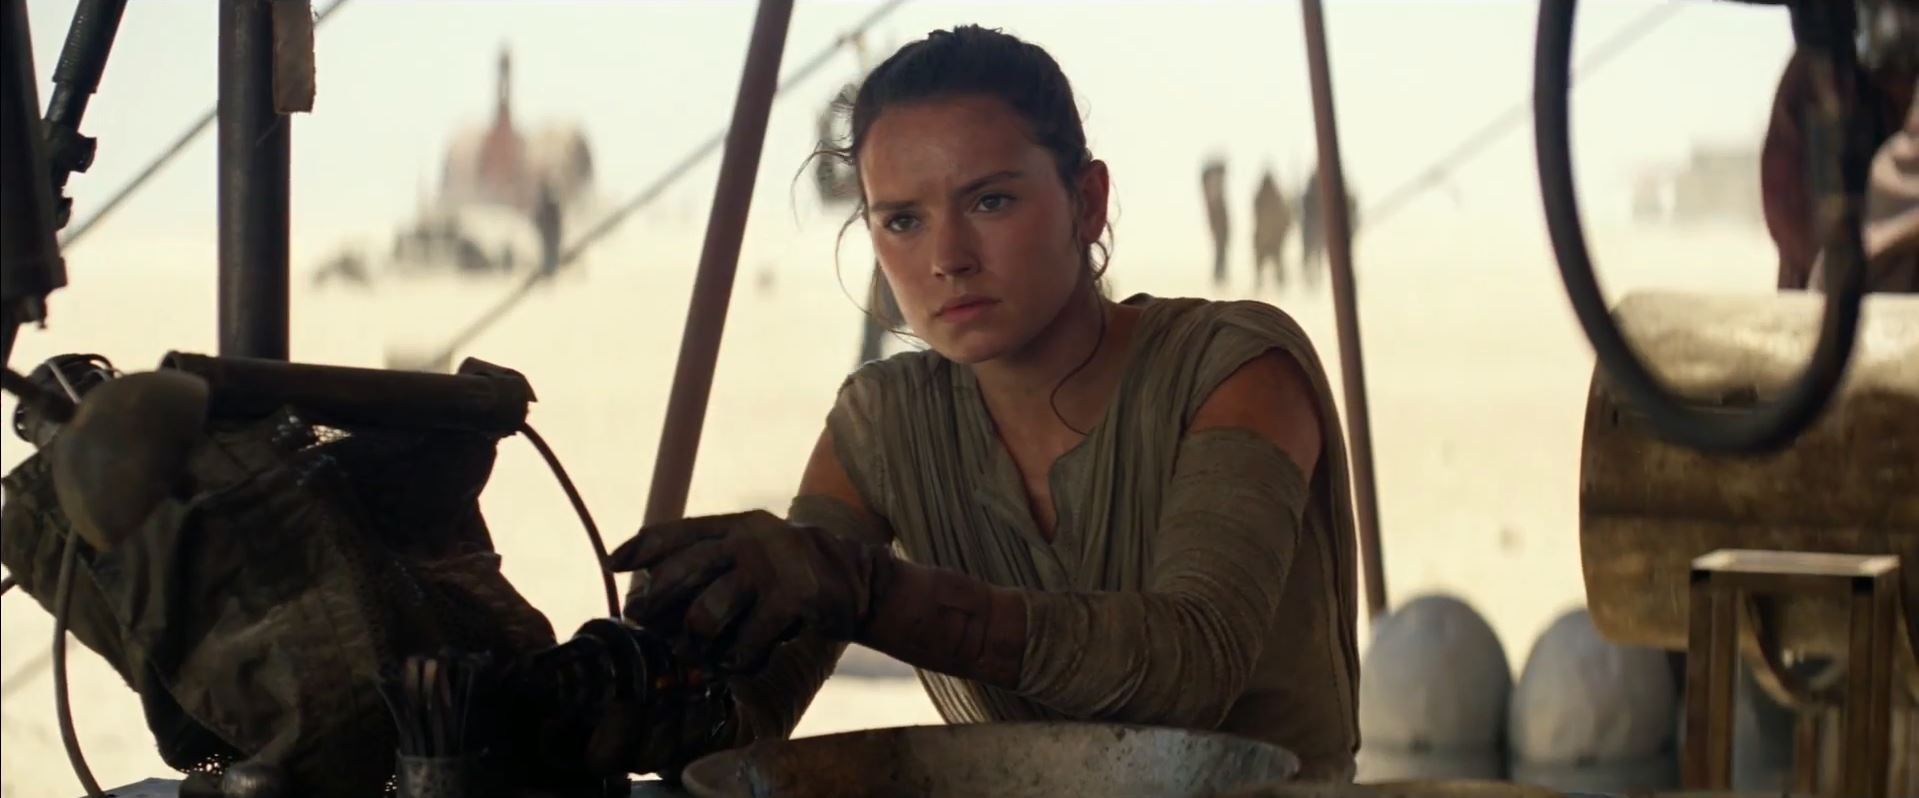 Rey stuck on Jakku. The Force Awakens review